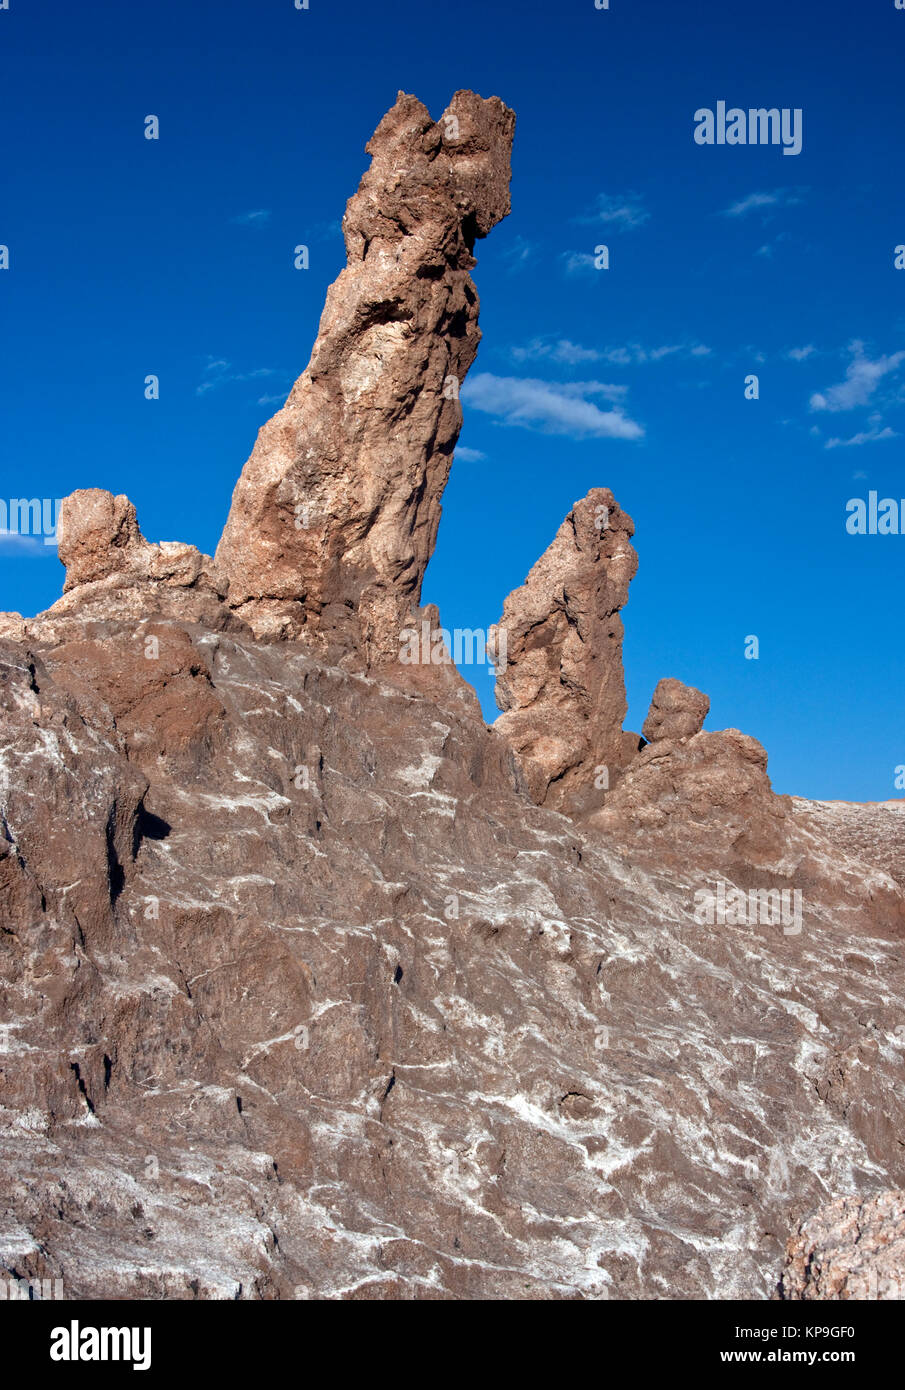 Rock formation in the Valley of the Dead in the Atacama Desert near San Pedro de Atacama, northern Chile, South - Stock Image